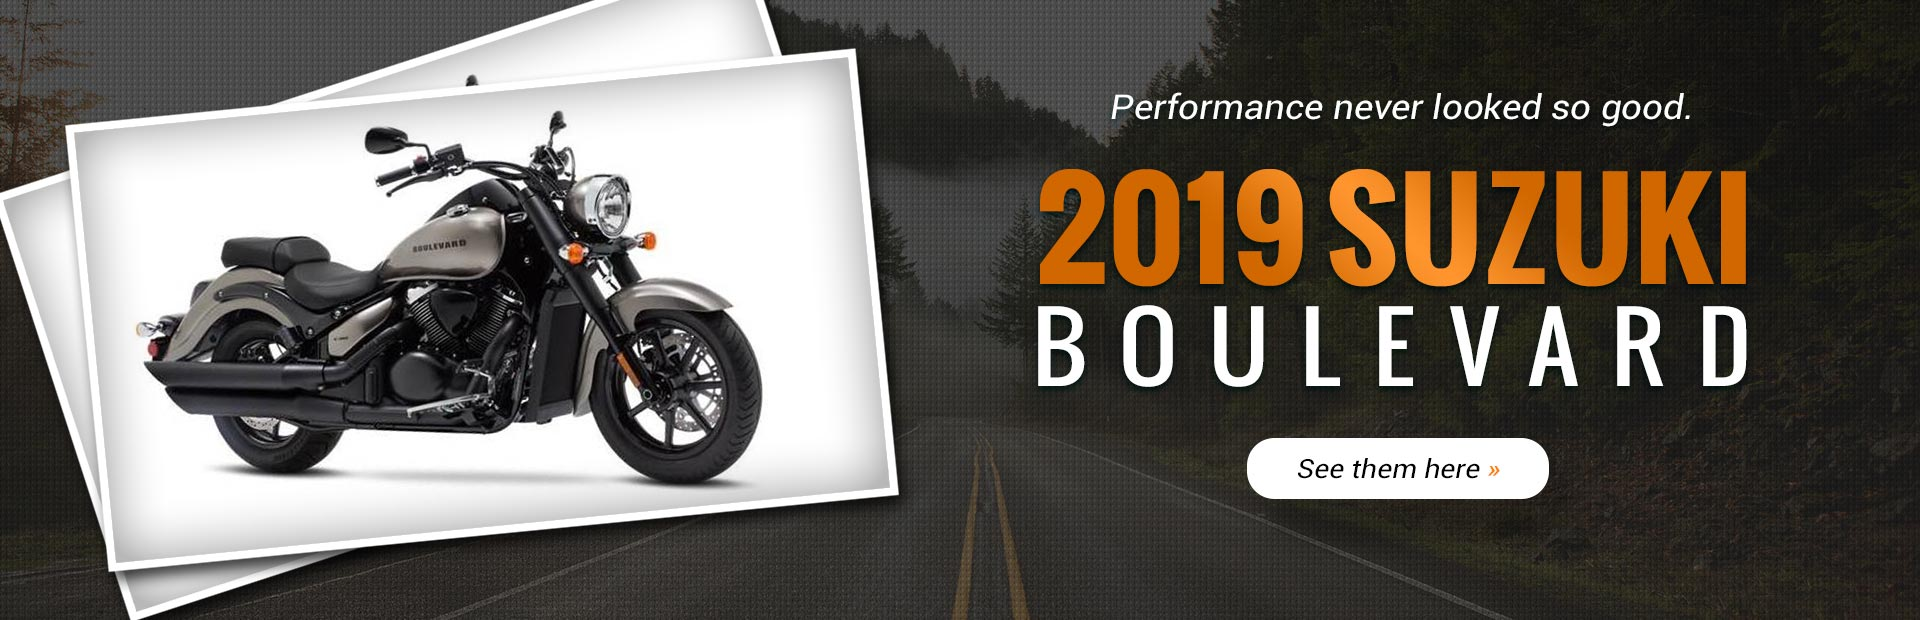 95a63c6301a Performance never looked so good. 2019 Suzuki Boulevard. See them here.